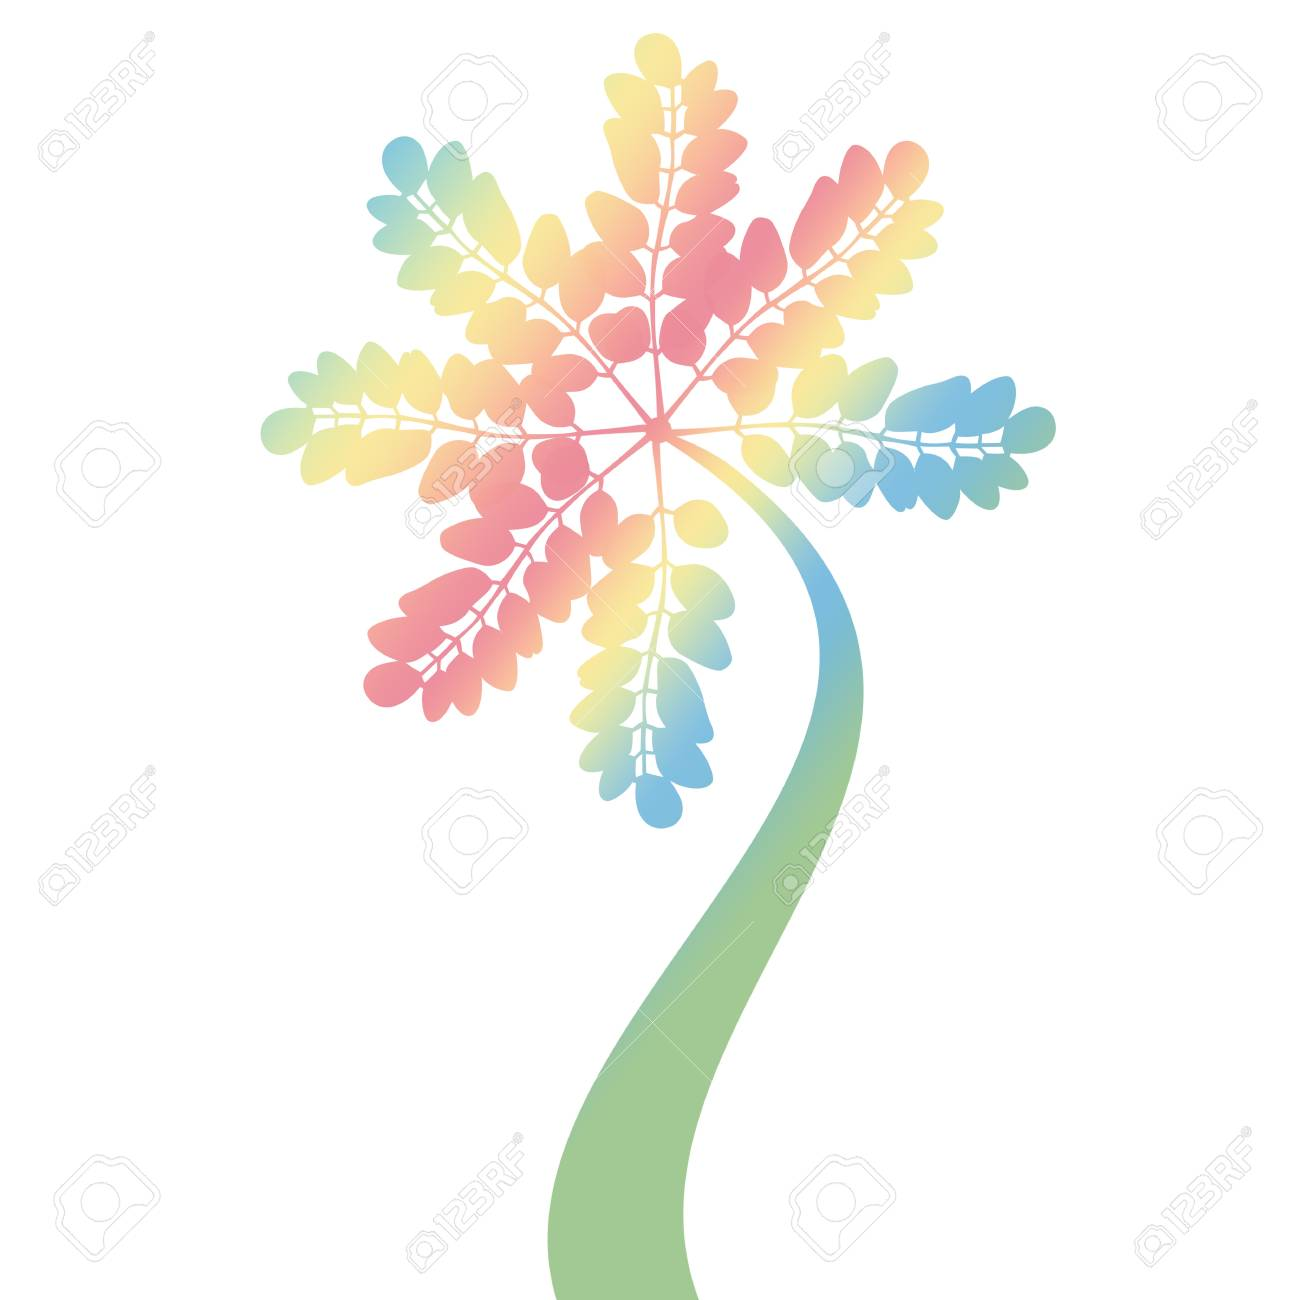 colorful art tree silhouette isolated on white background Stock Vector - 13352746